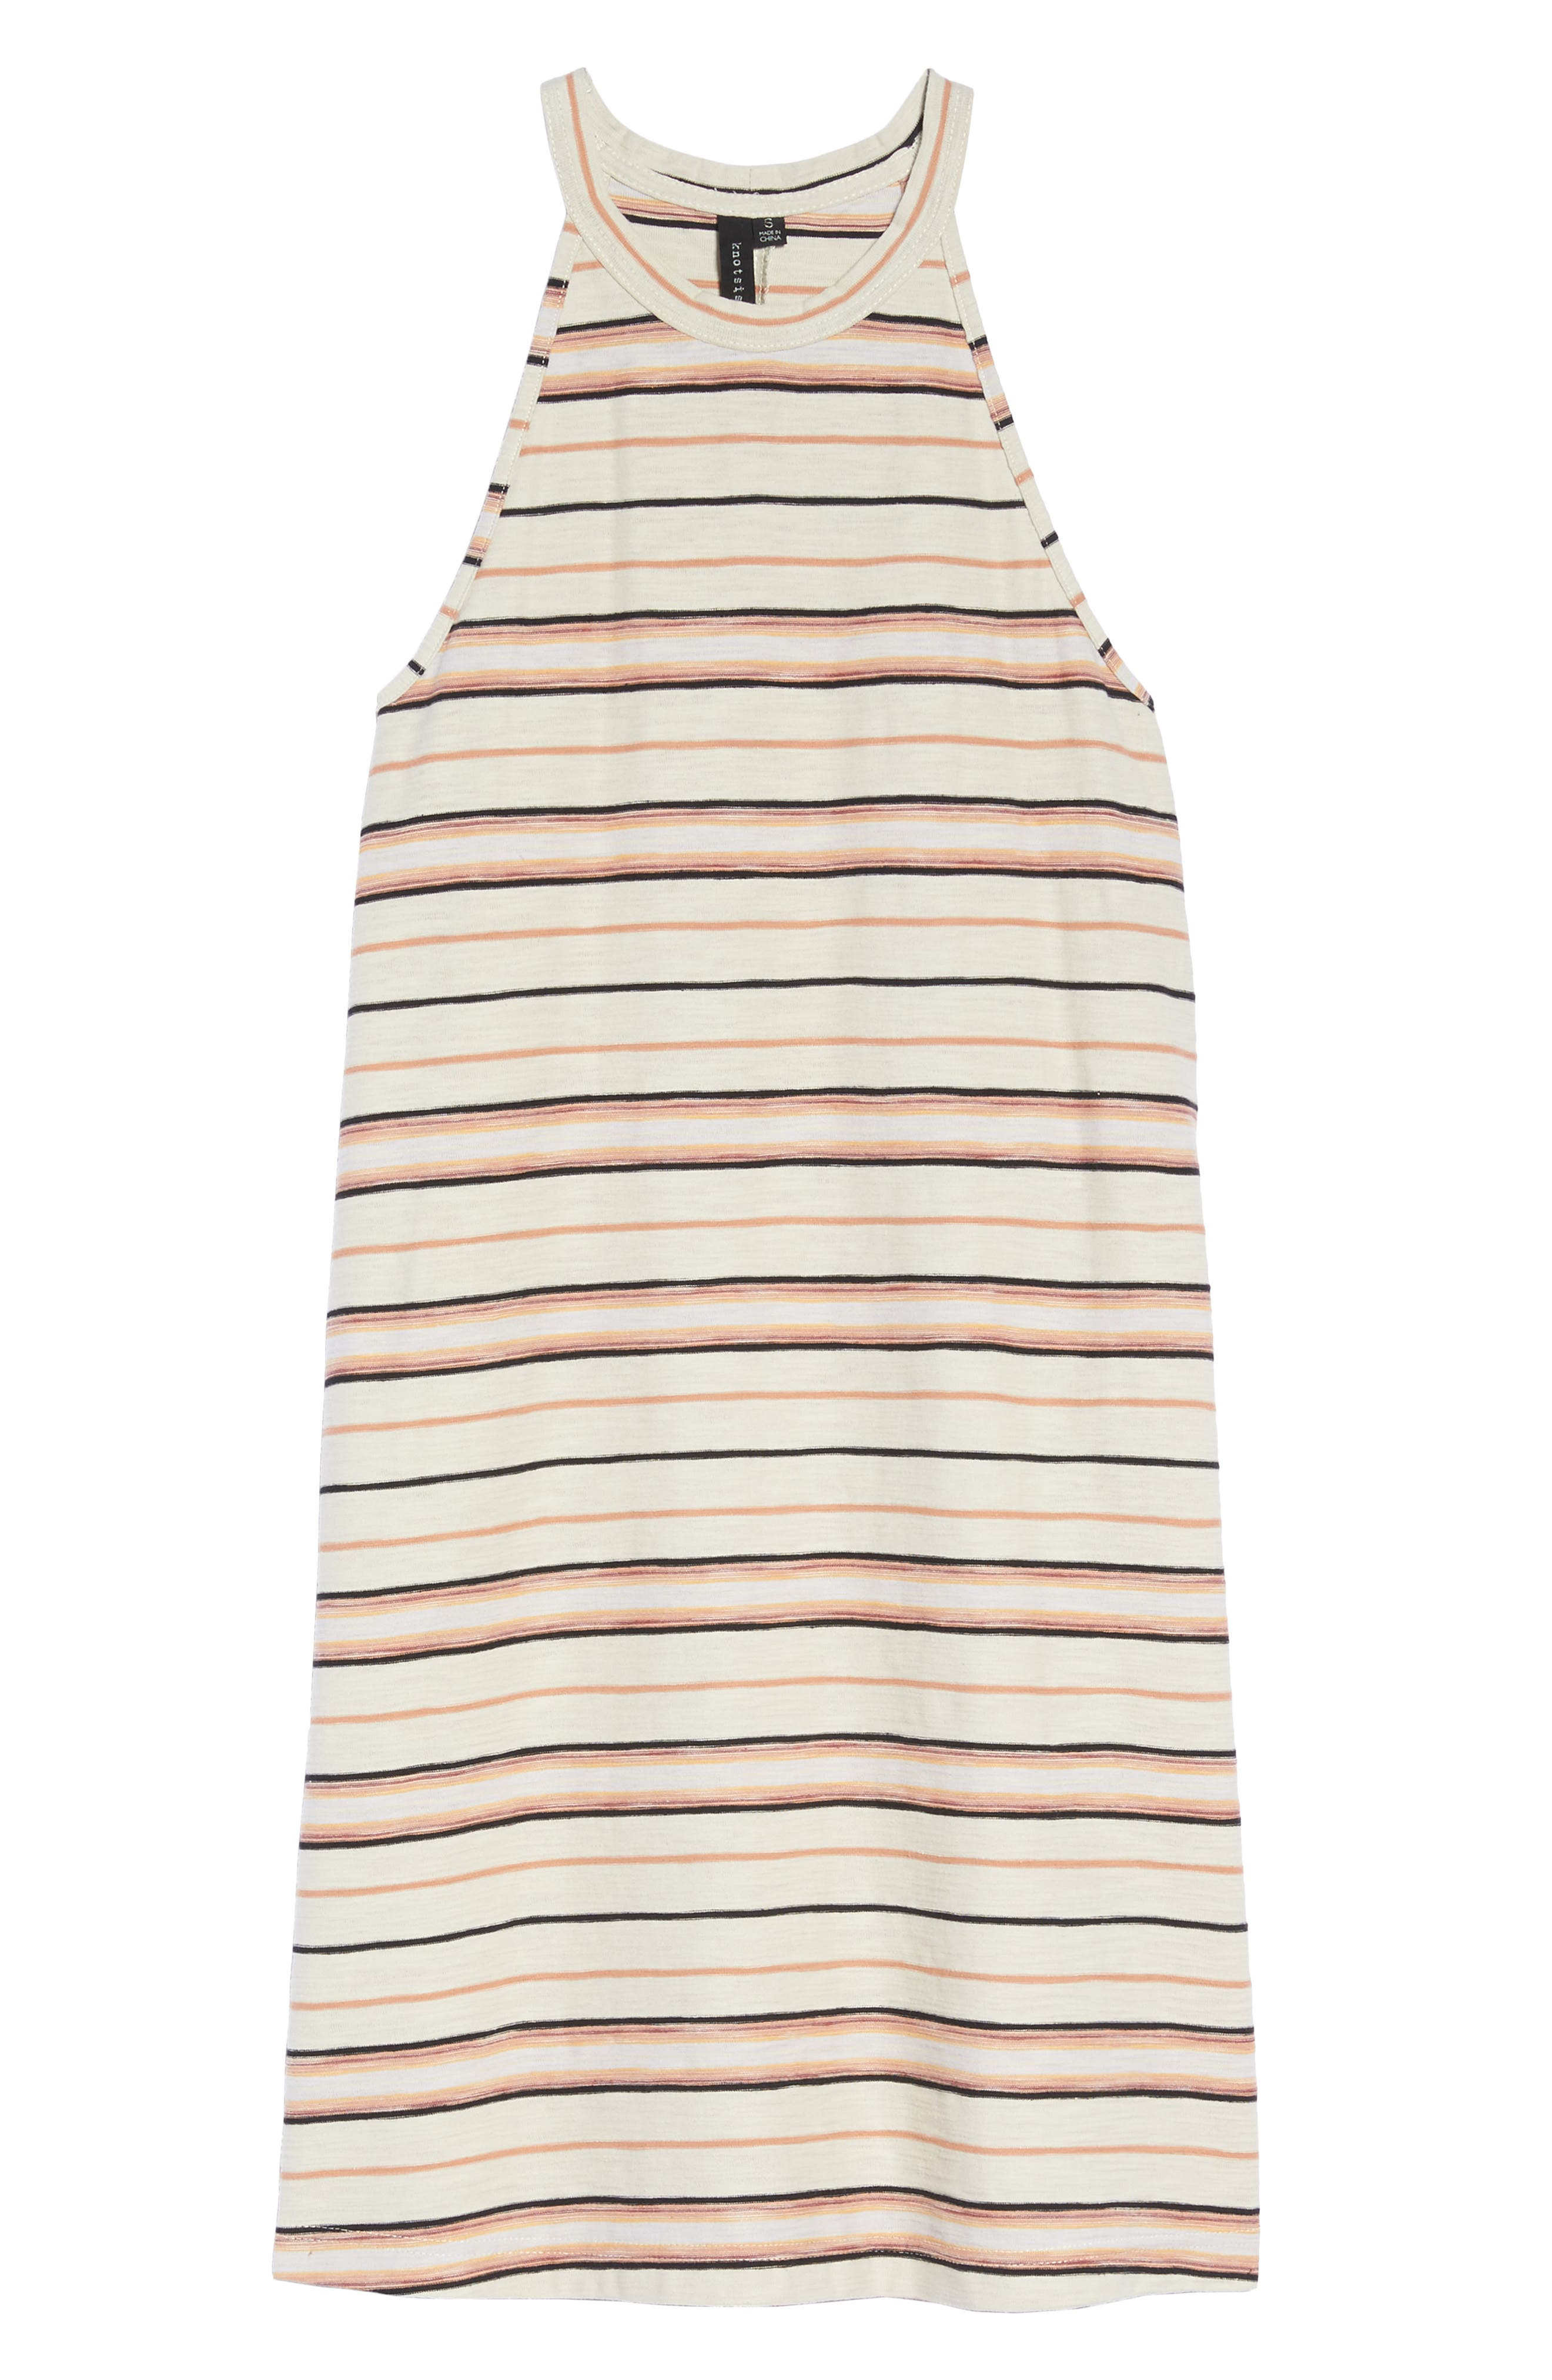 Field Day Stripe Dress,                             Alternate thumbnail 6, color,